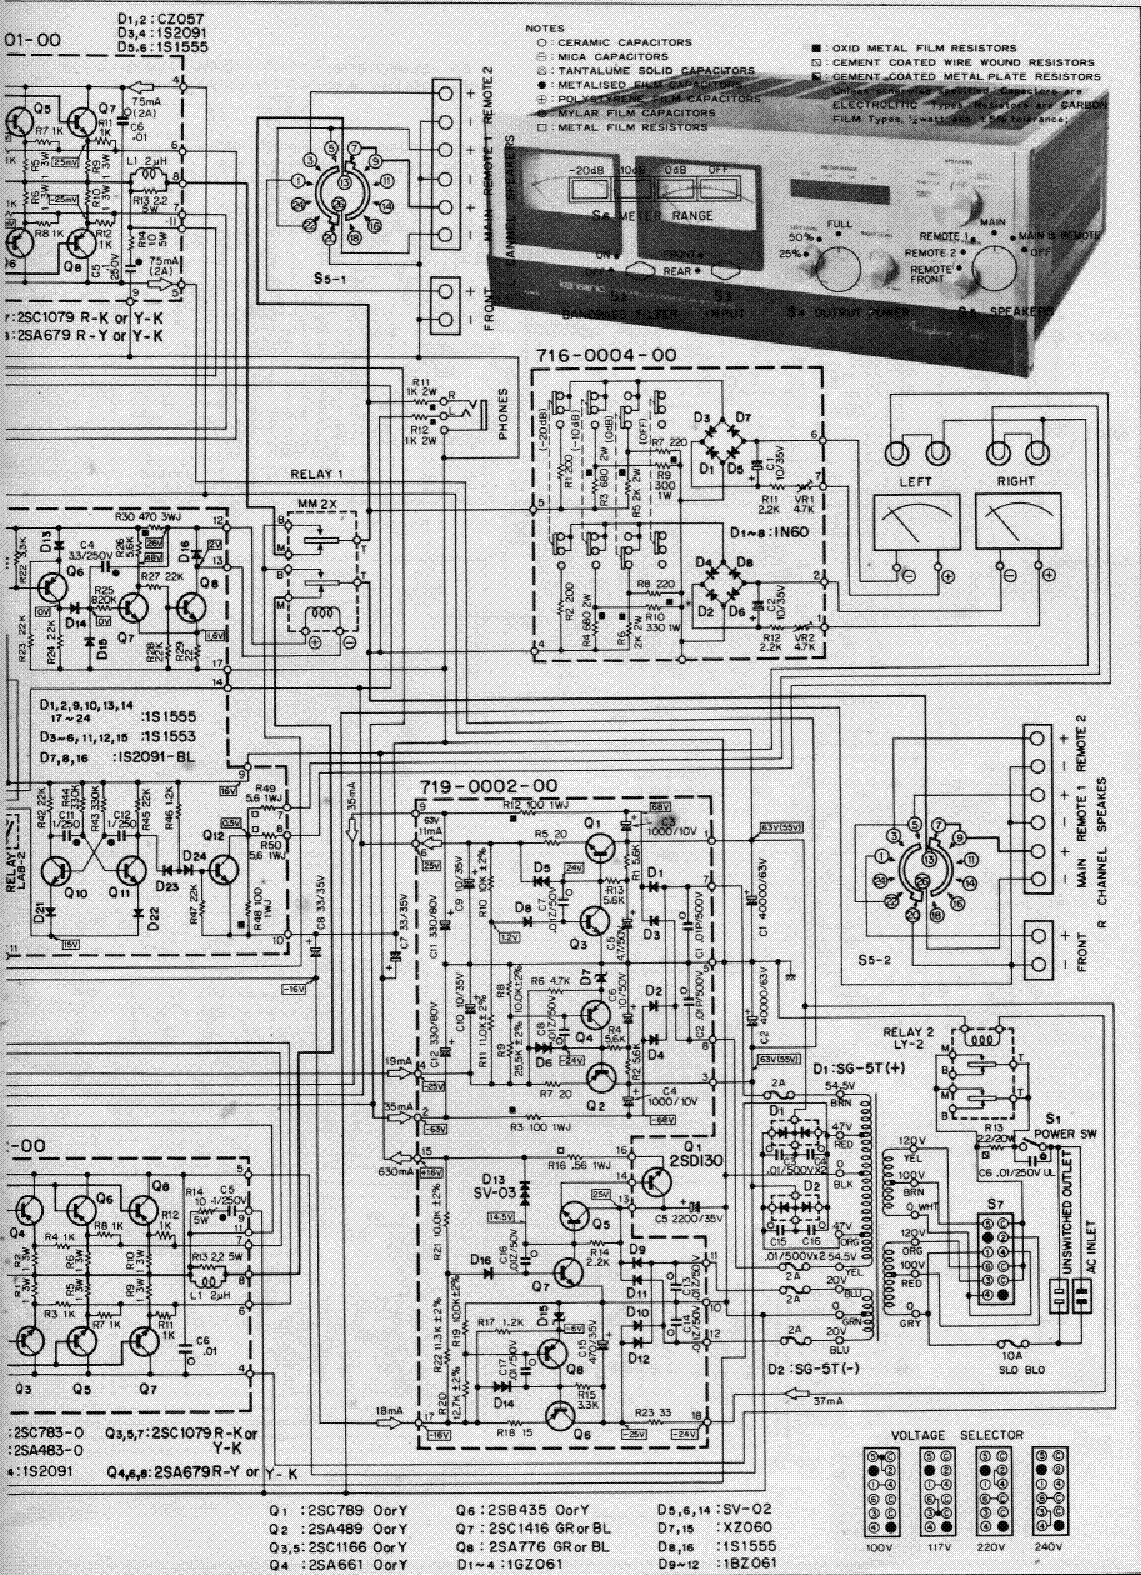 Mod Box Wiring Diagram Free Download Wiring Diagram Schematic